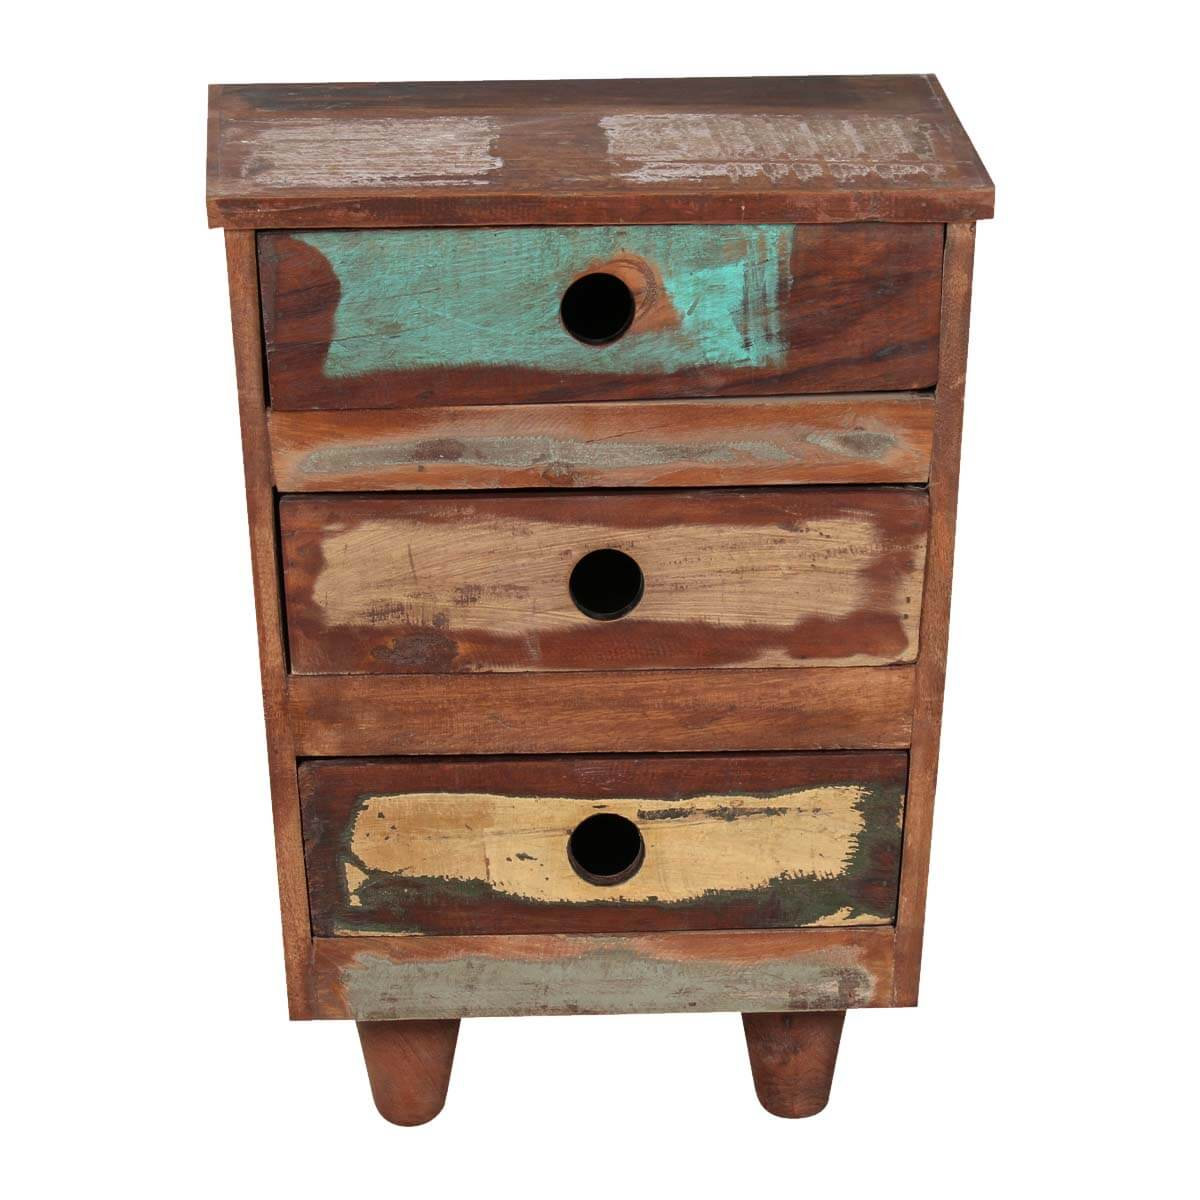 sedona three drawer reclaimed wood rustic end table with drawers skinny foyer glass top patio and chairs wicker side flooring specials black mirrored console lamp height parawood